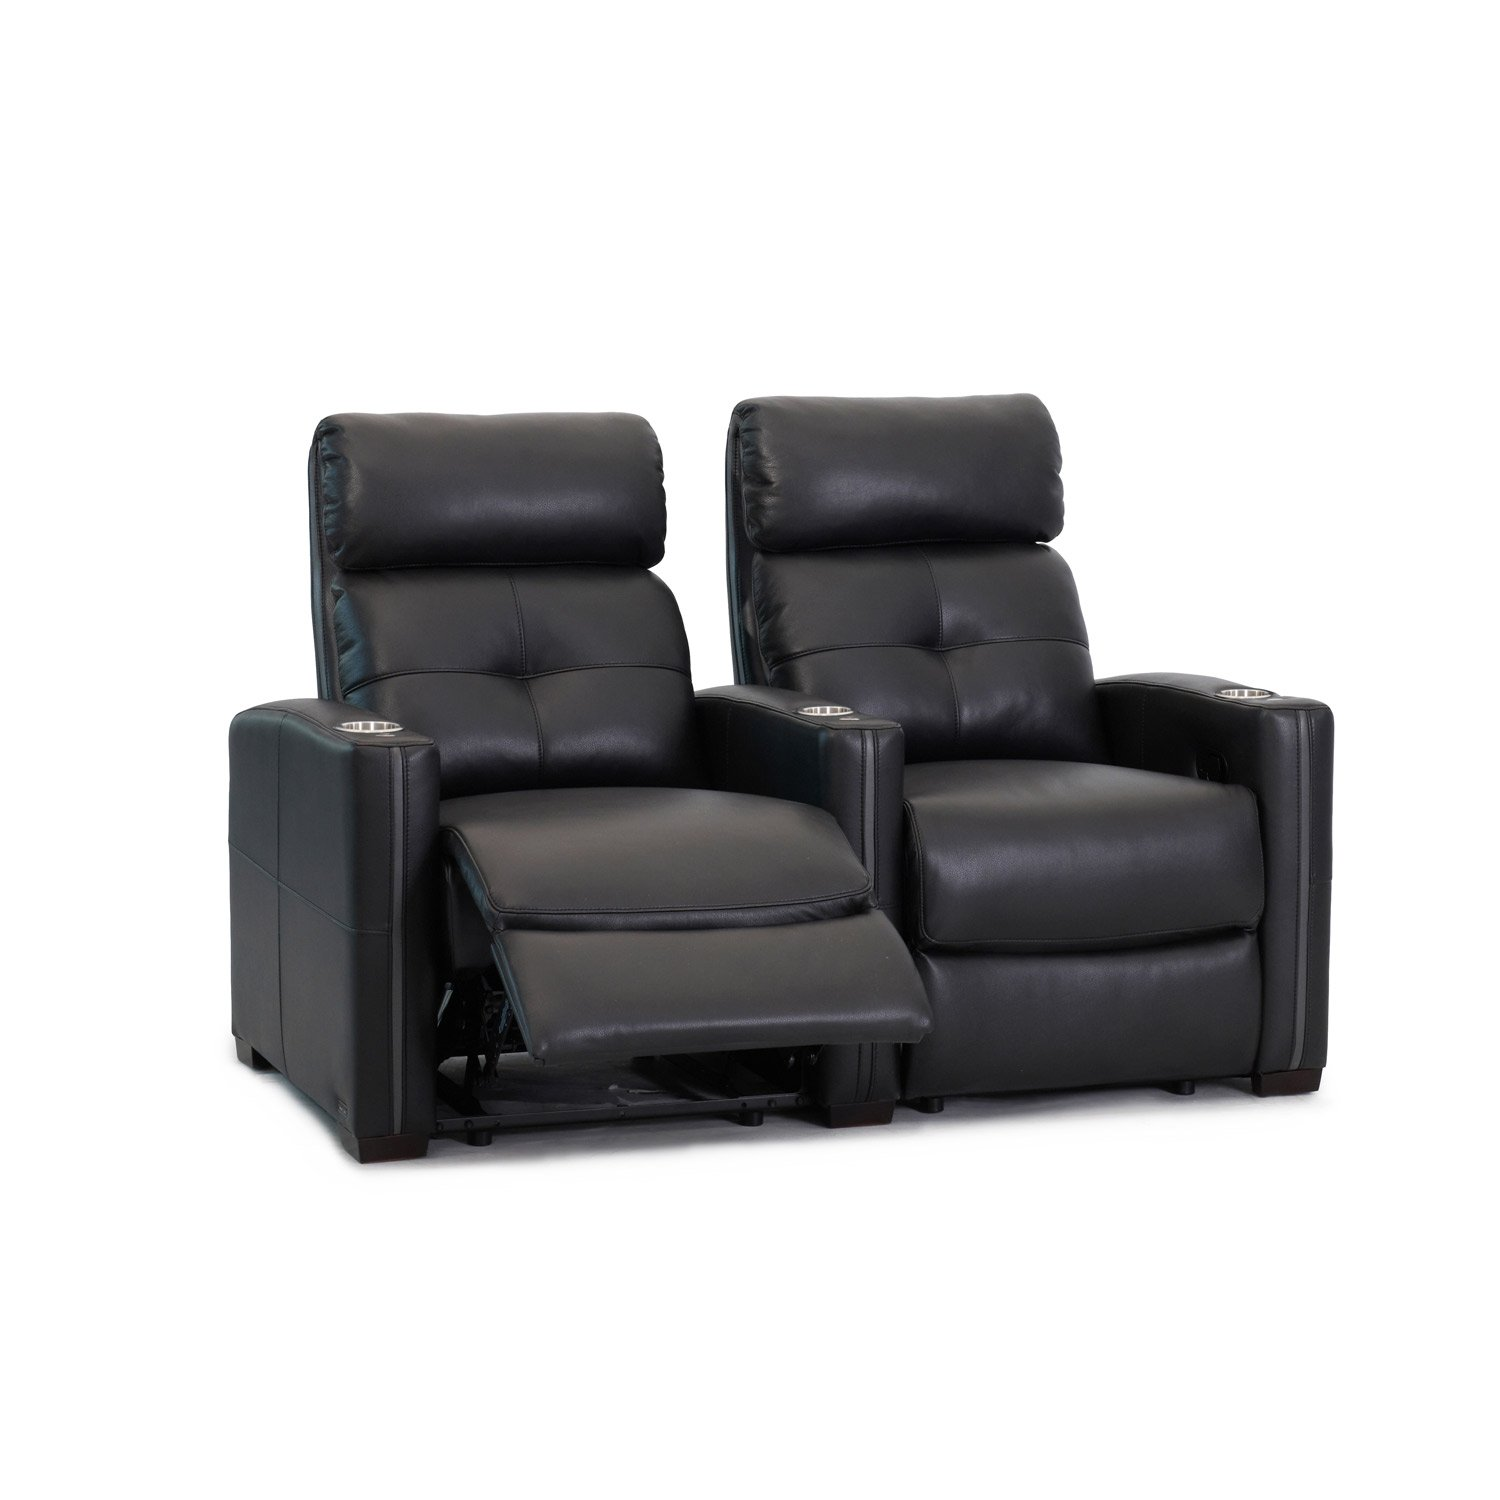 Octane Seating Cloud Xs850 Home Theater Chairs Row 4 Seats